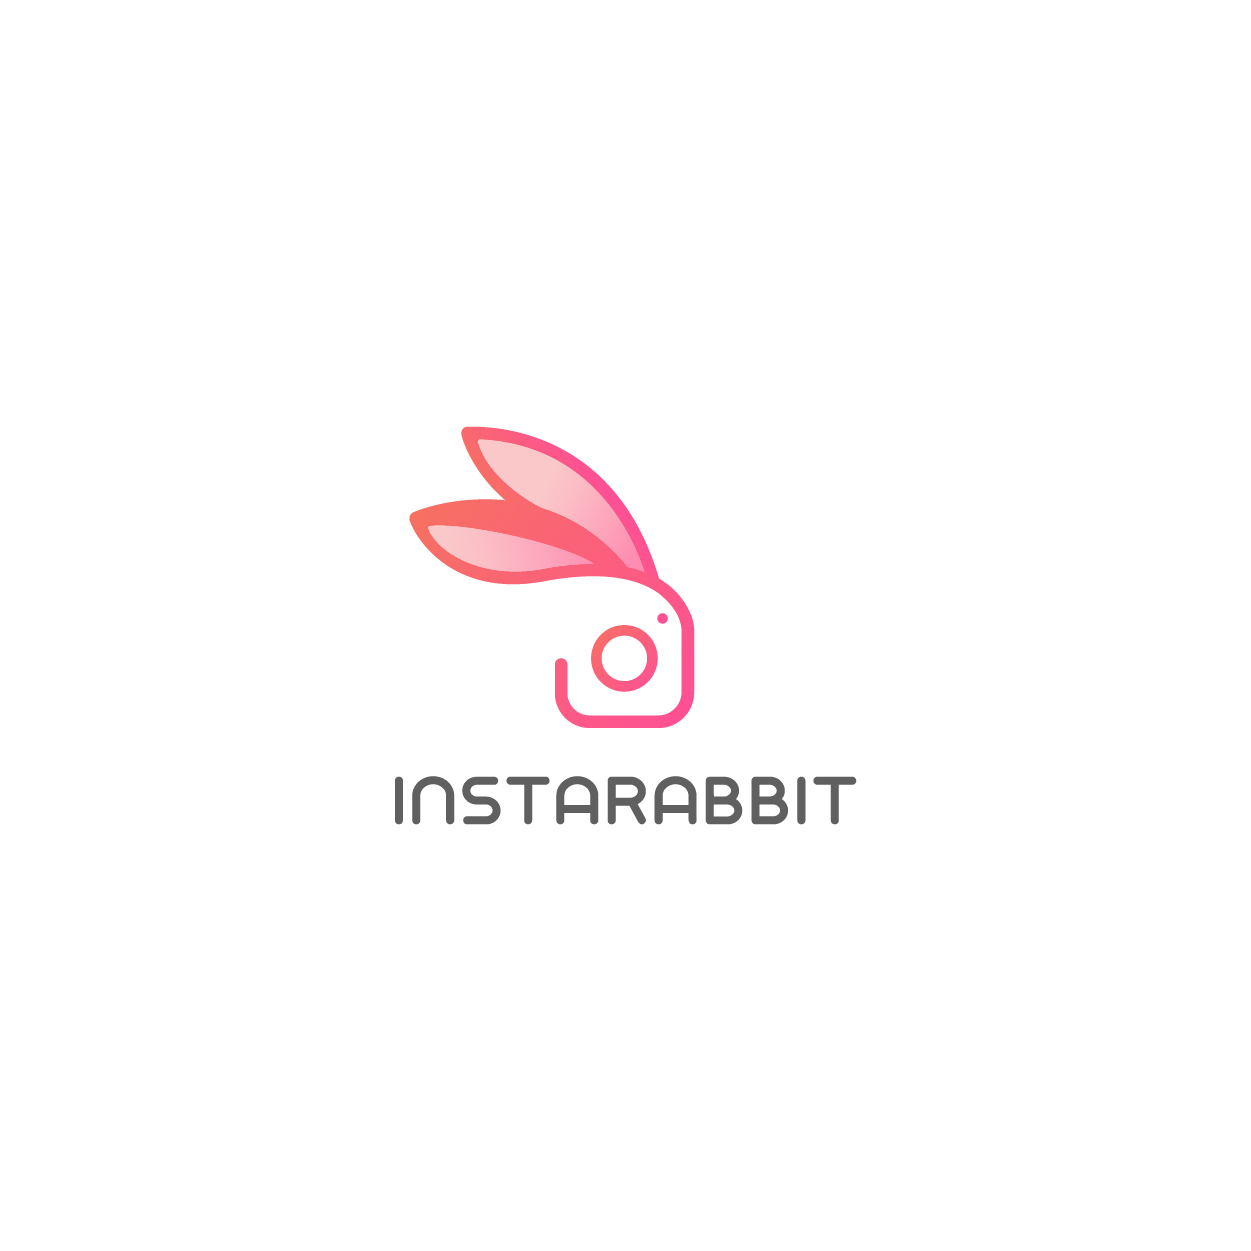 Instarabbit Review: Does it really boost your Instagram engagement?